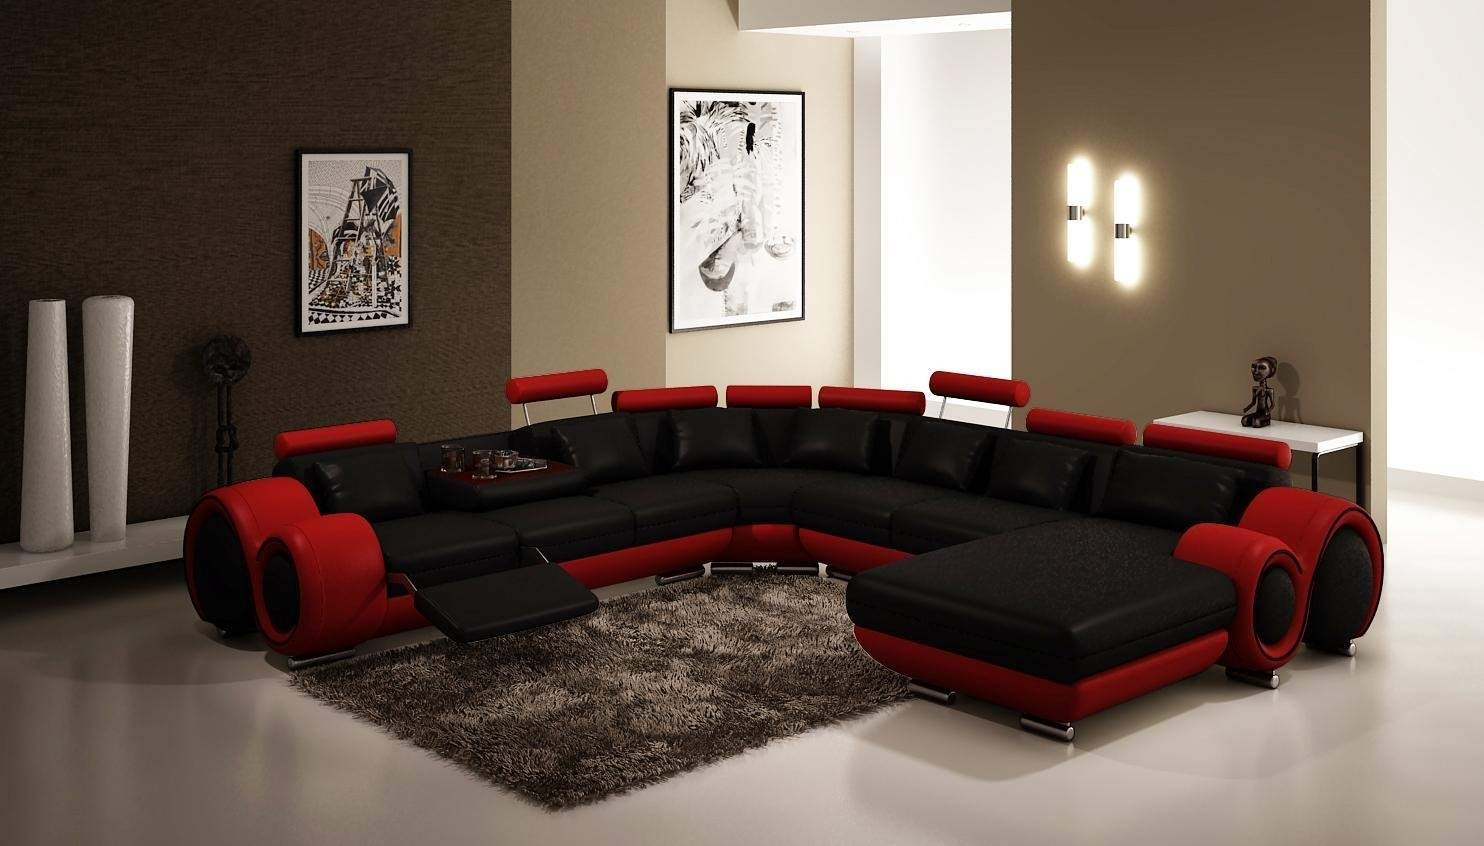 Best Free Modern Sectional Sofa Gta #25321 With Regard To Gta Sectional Sofas (View 6 of 10)